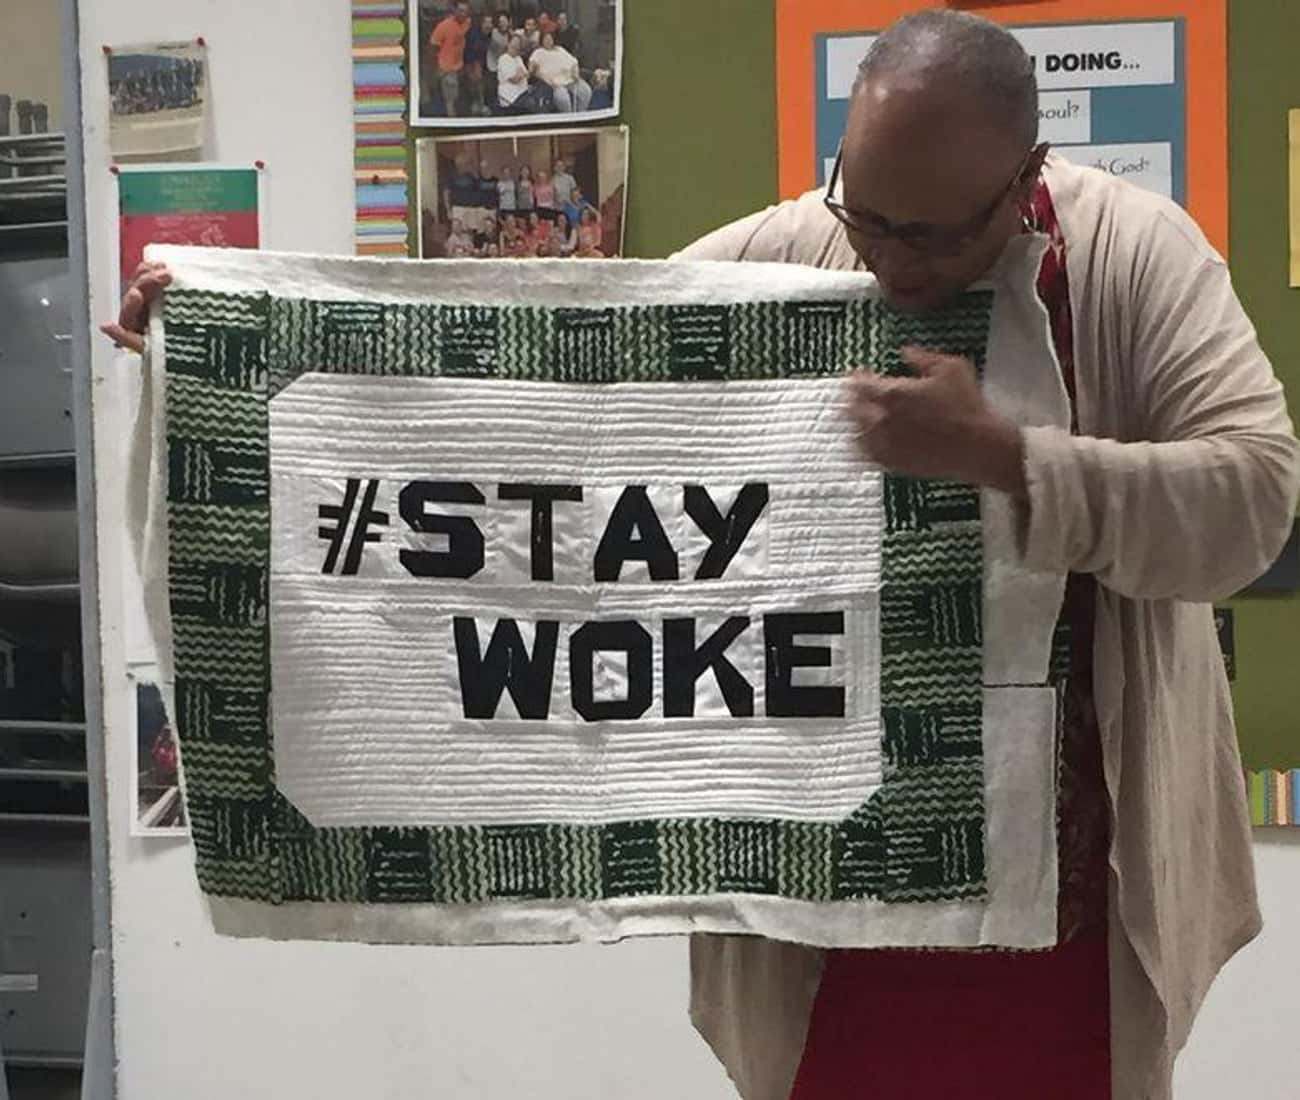 """People Have Been Staying """"Woke"""" For More Than 50 Years"""